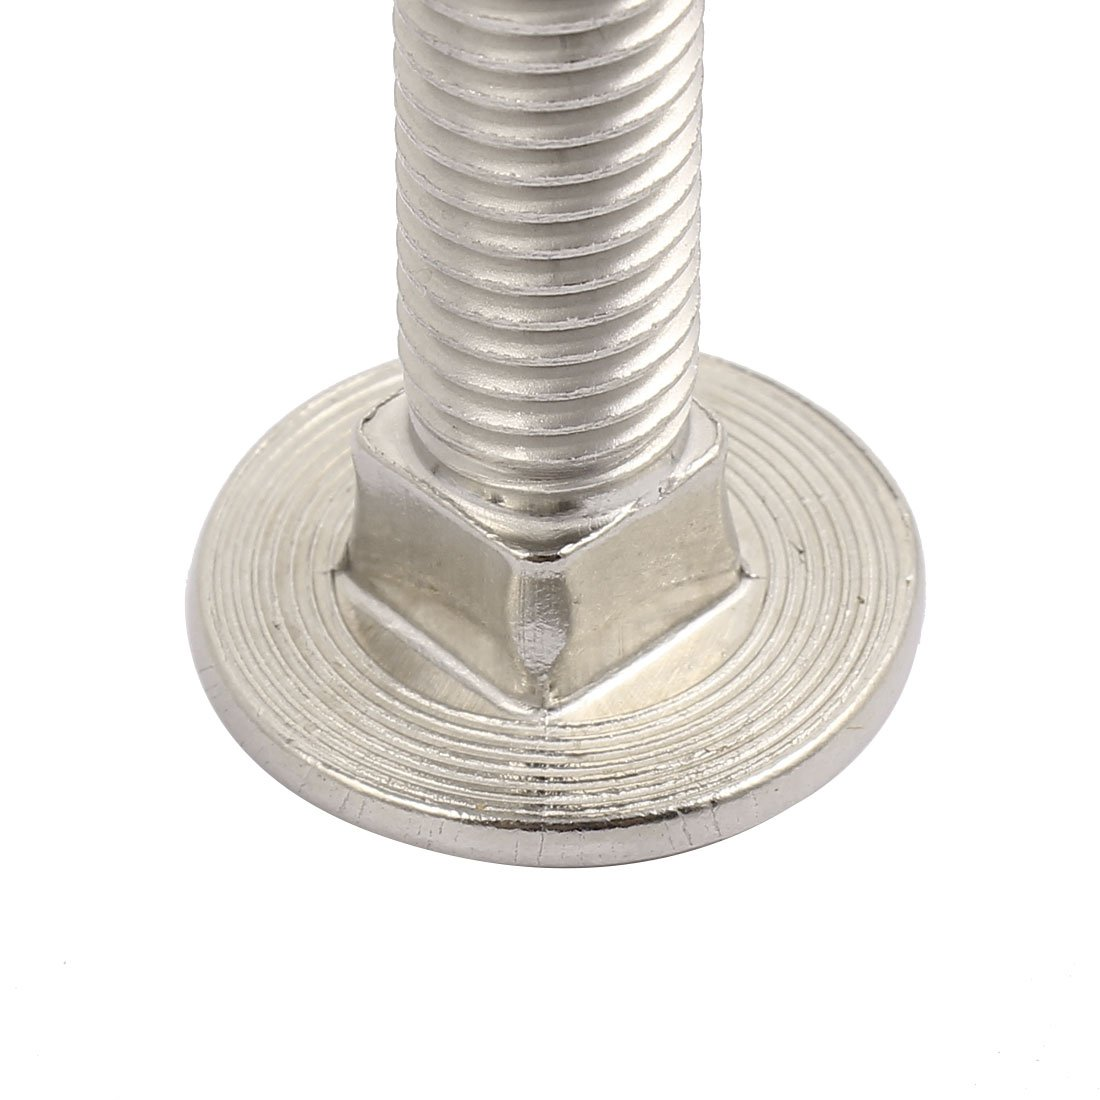 uxcell M12 x 65mm 304 Stainless Steel Round Head Carriage Coach Bolts DIN603 2PCS US-SA-AJD-289855